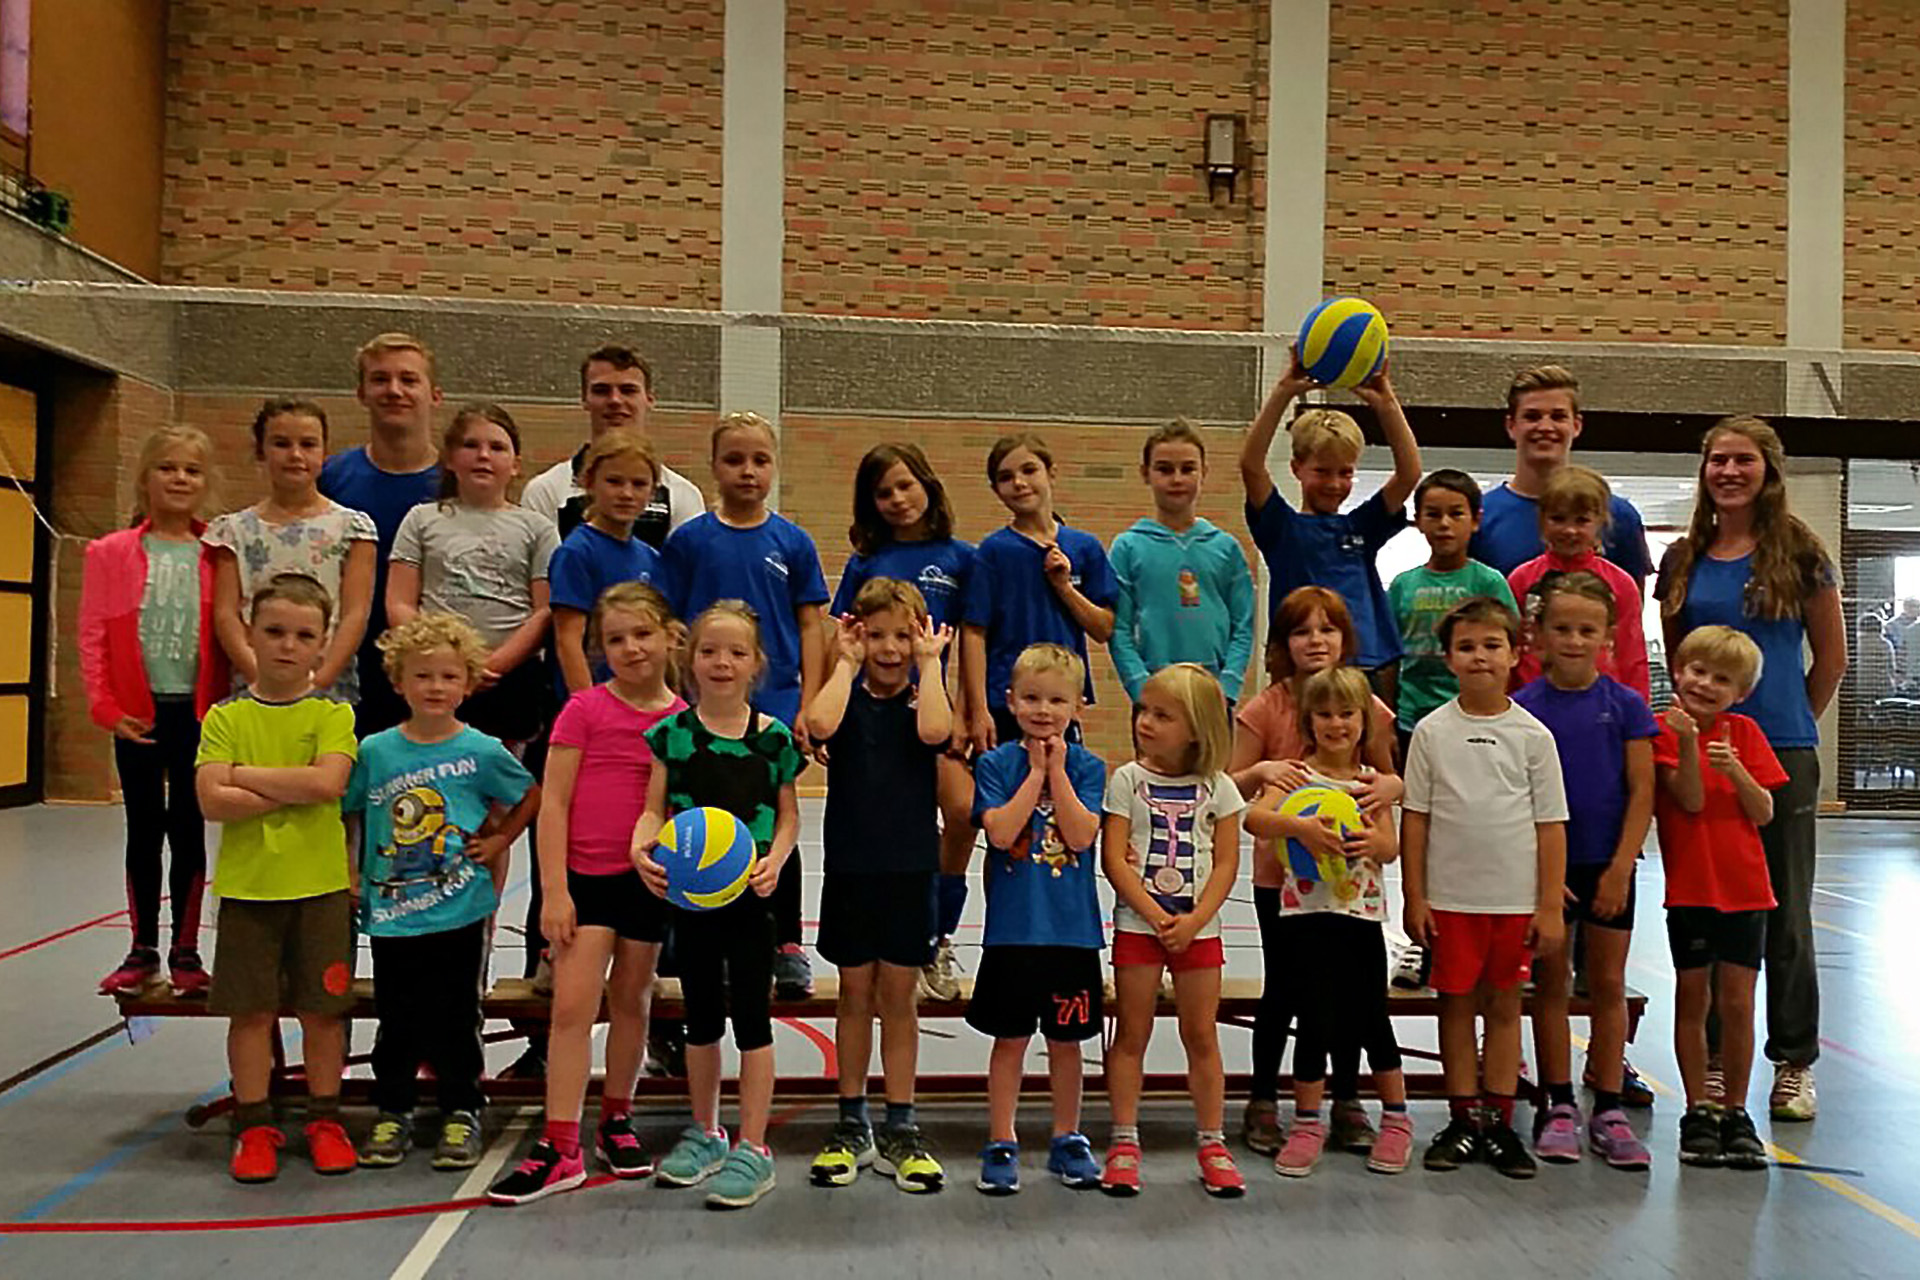 VC Kalken Volleybalschool